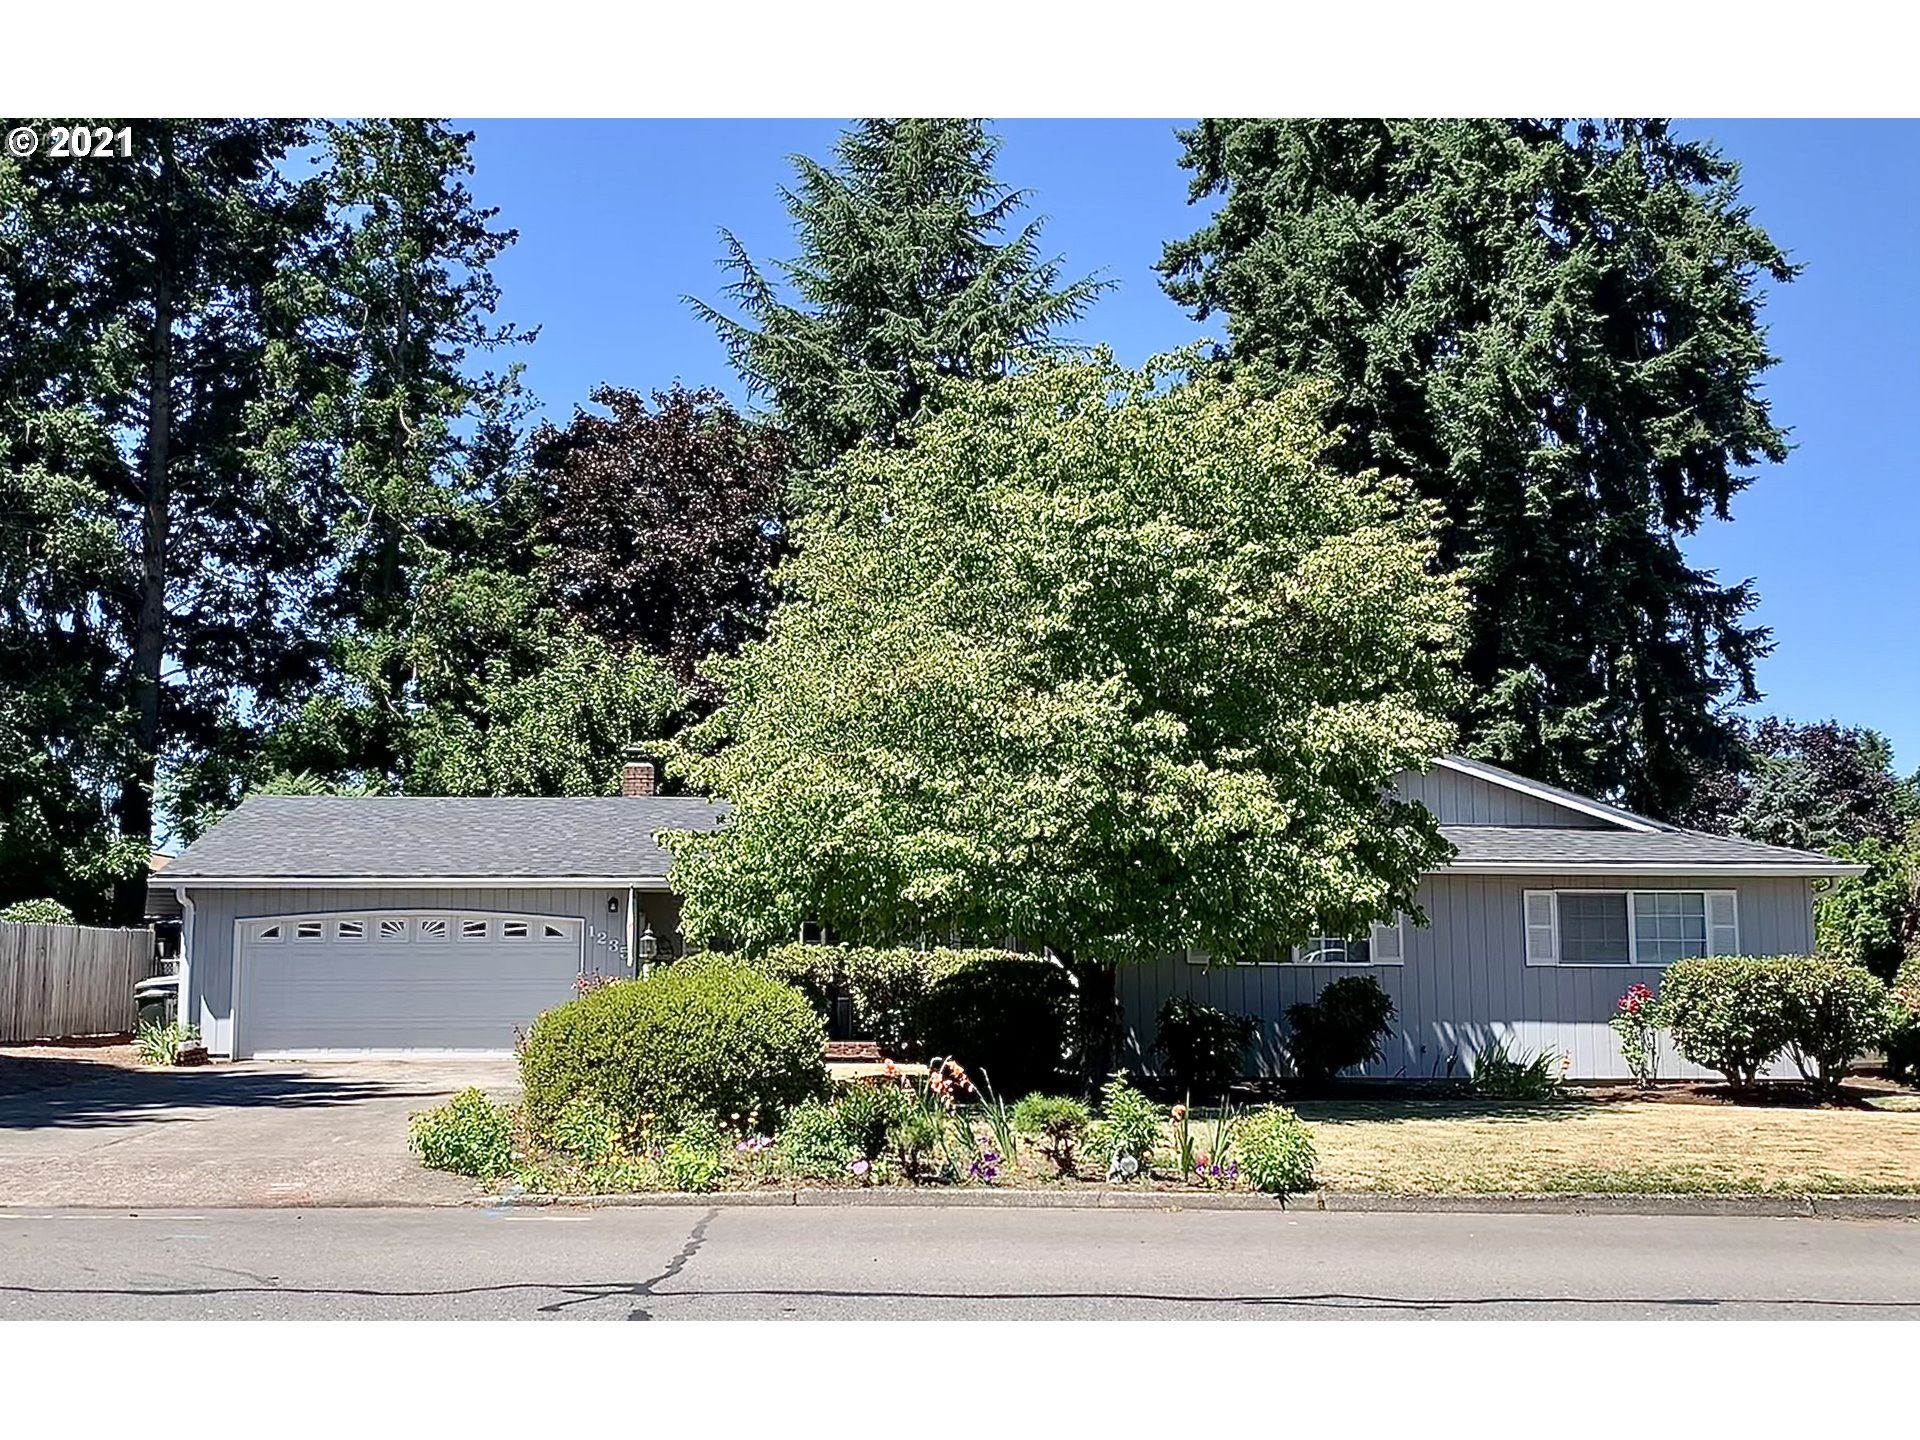 1235 N HOLLY ST, Canby, OR 97013 - MLS#: 21081002